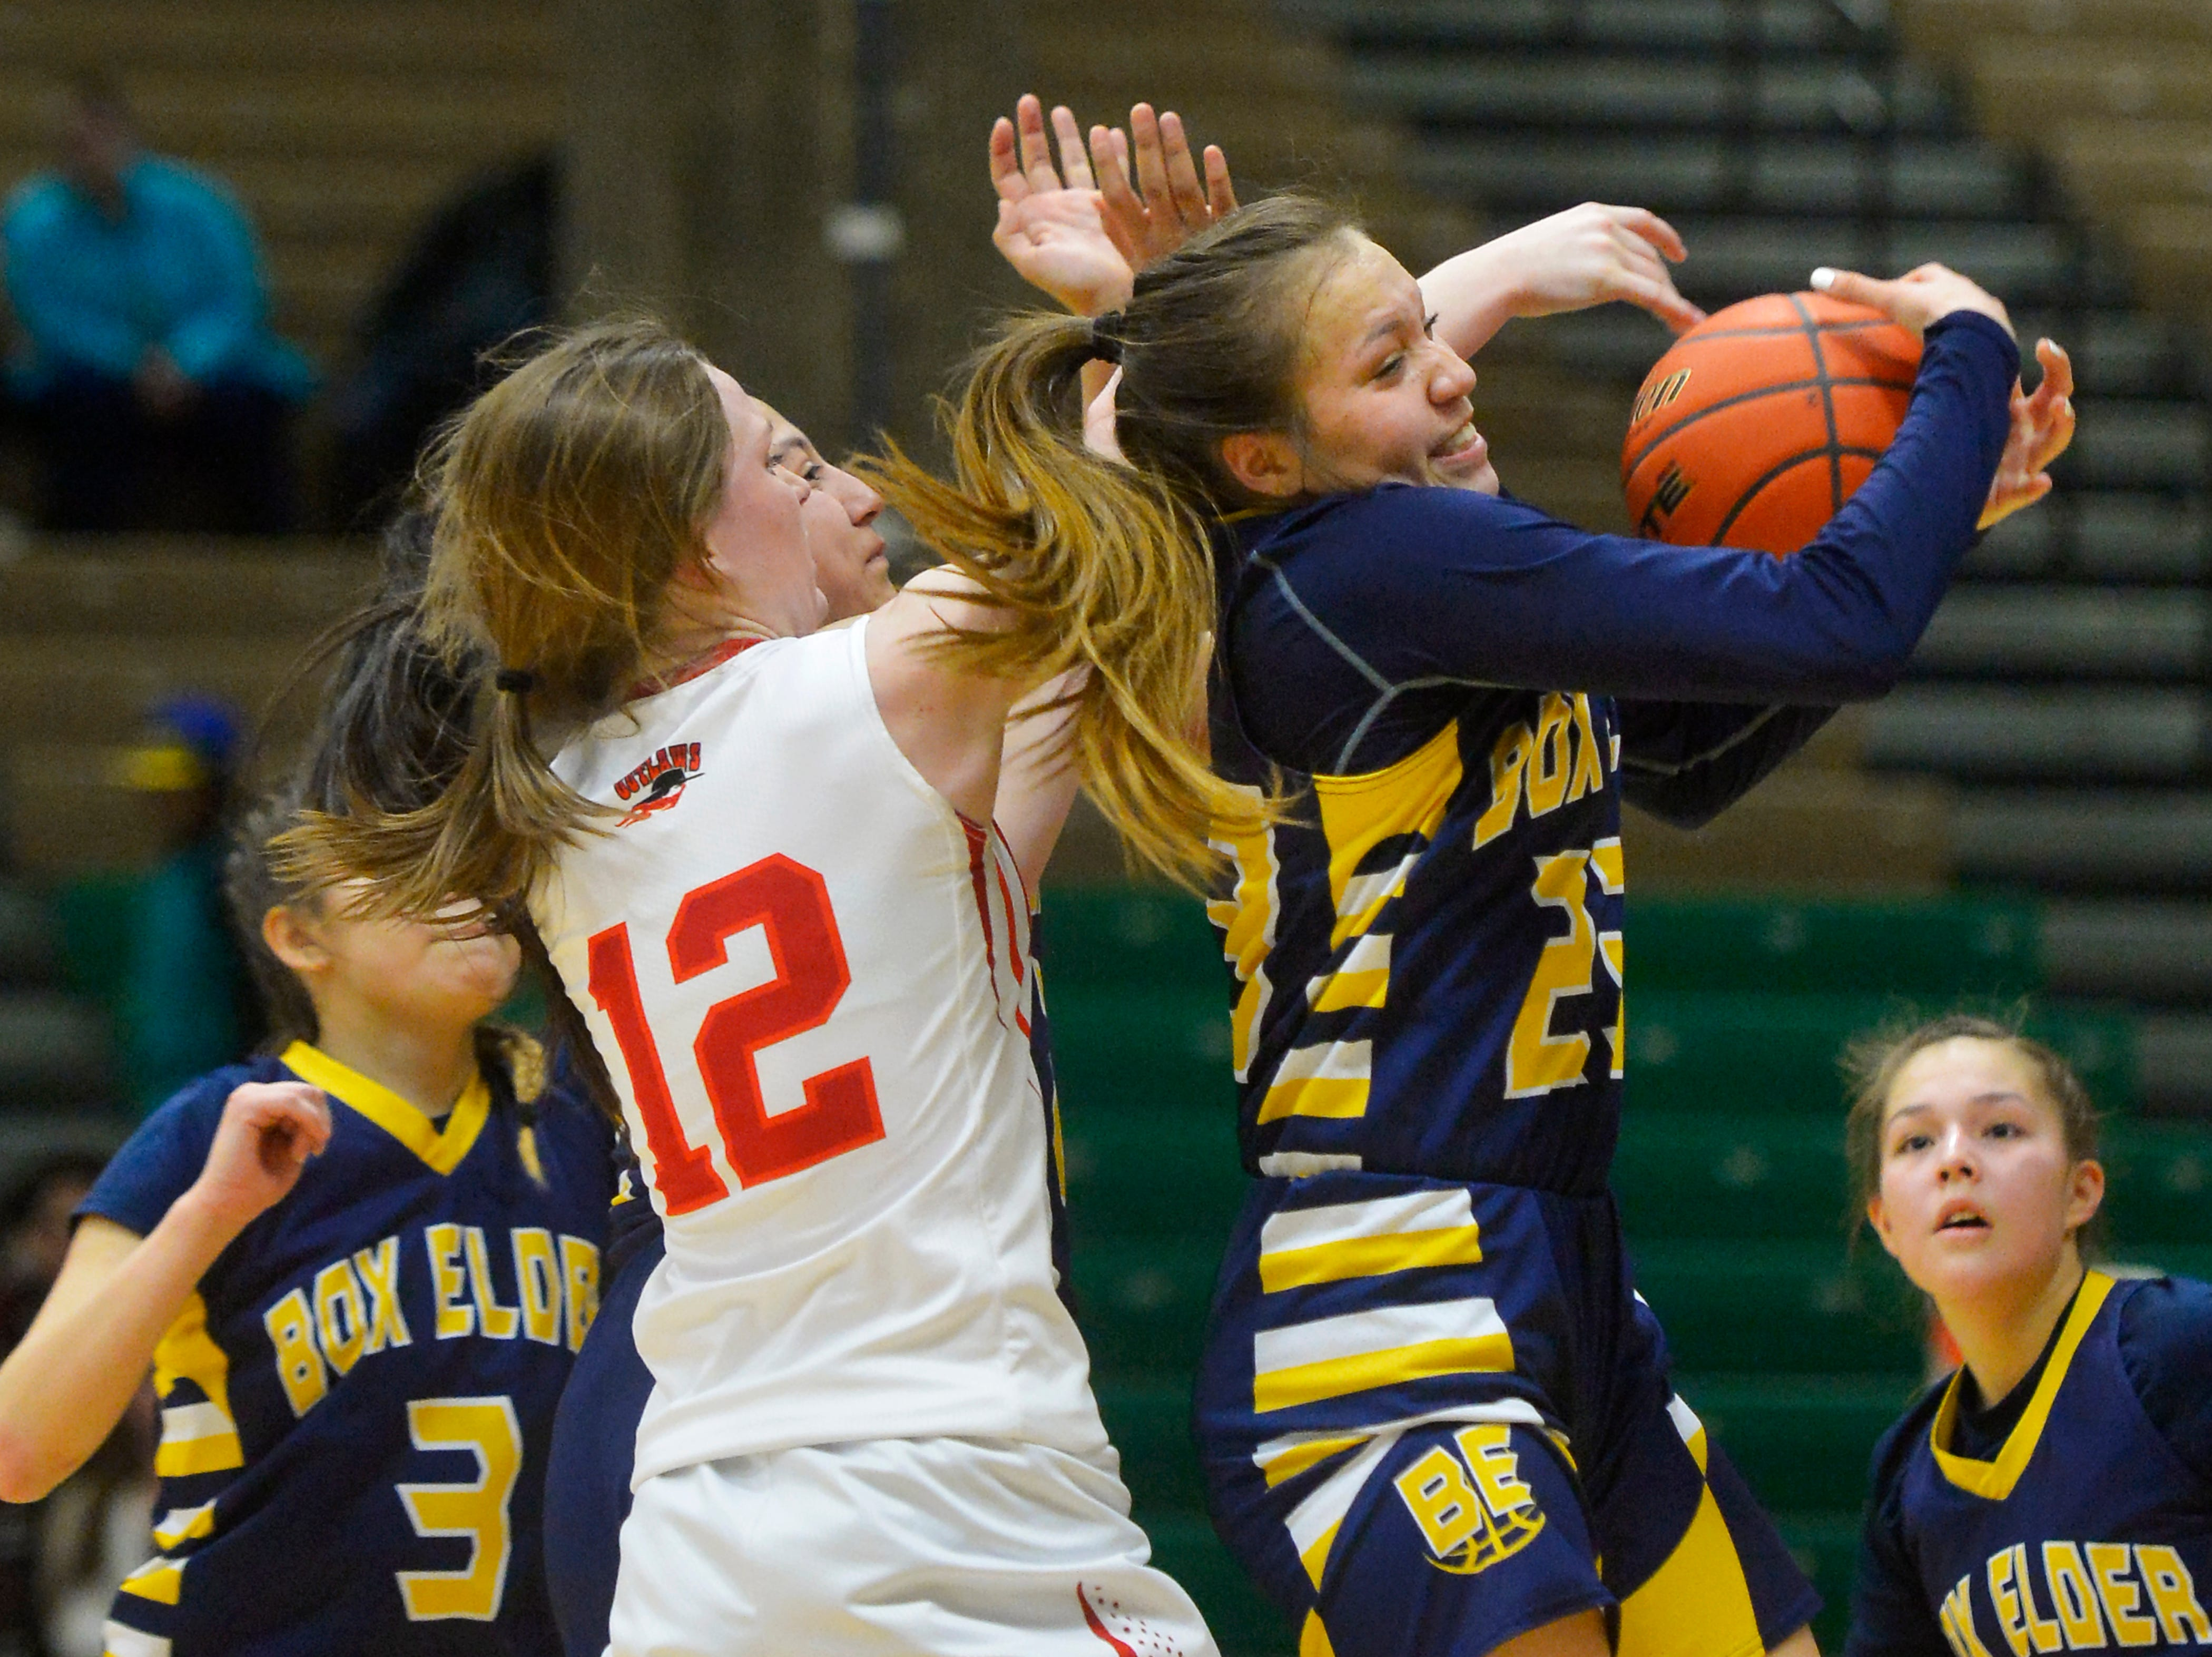 Box Elder's Kayla Momberg grabs a rebound in Saturday's Class C basketball state championship game against Roy-Winifred in the Four Seasons Arena.